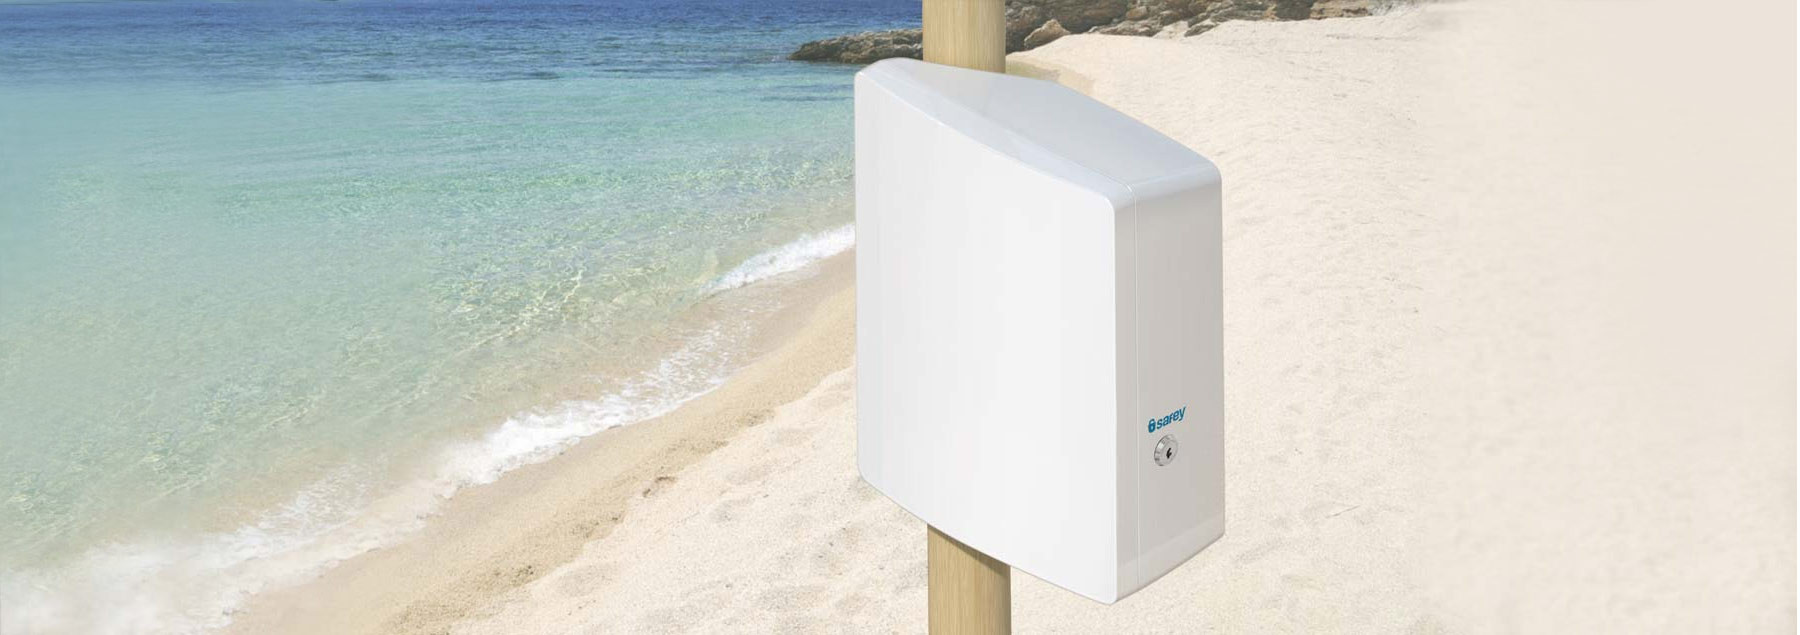 Safey safety box security solution for beach and pool